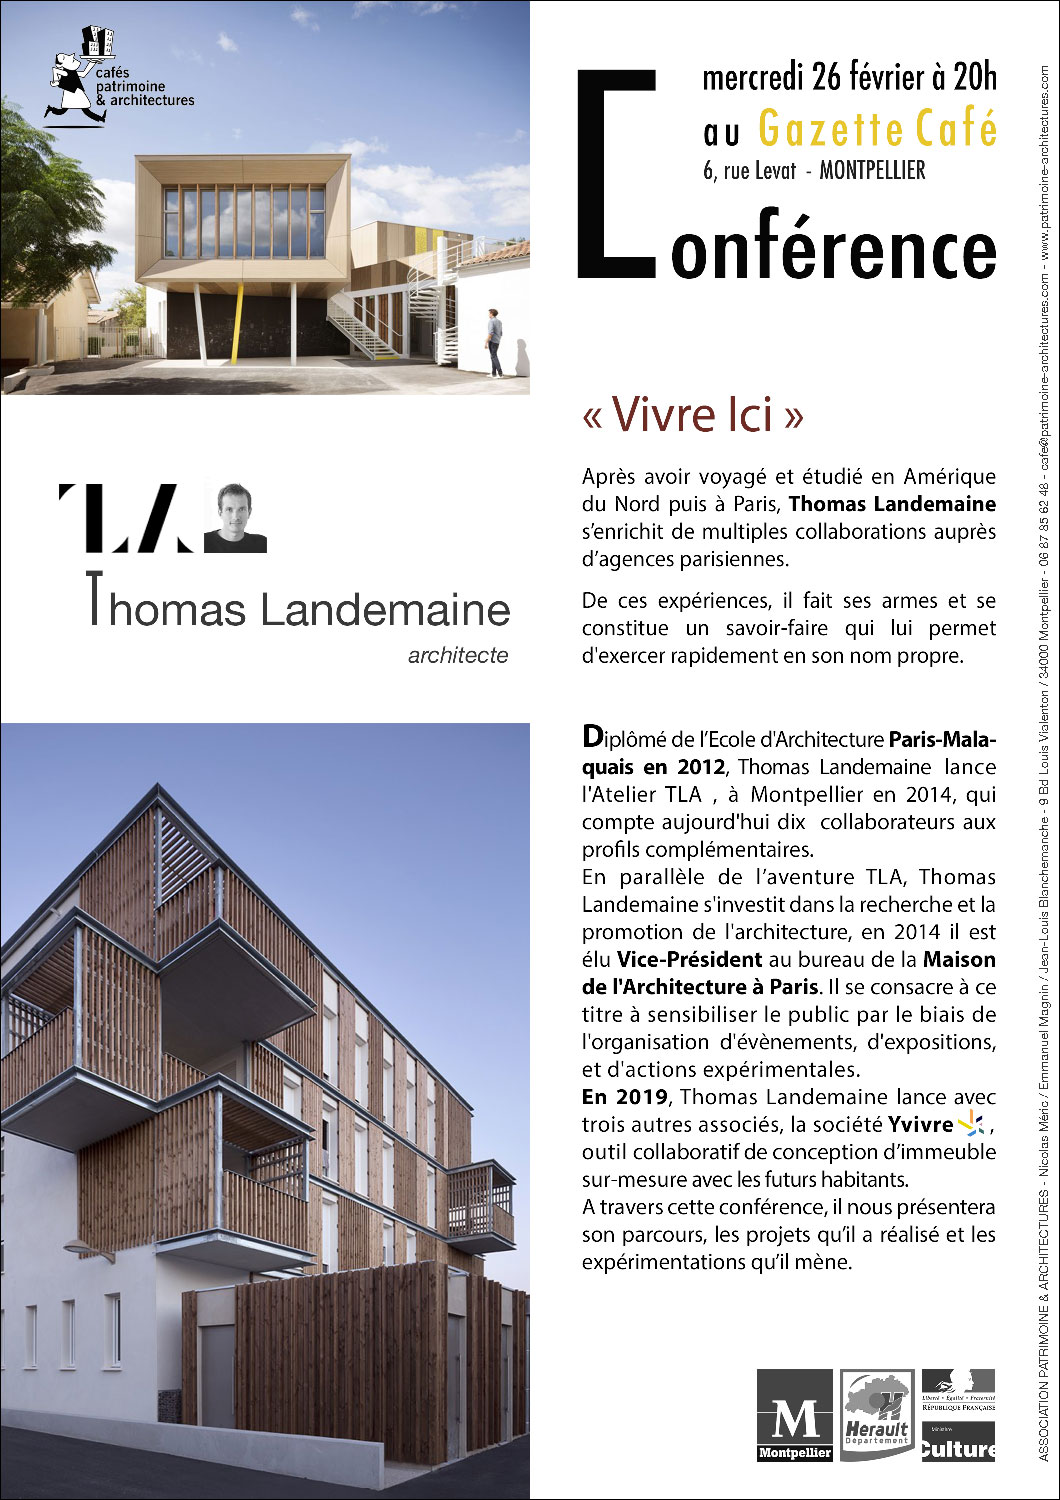 flyer-03-2019-2020-02-conference